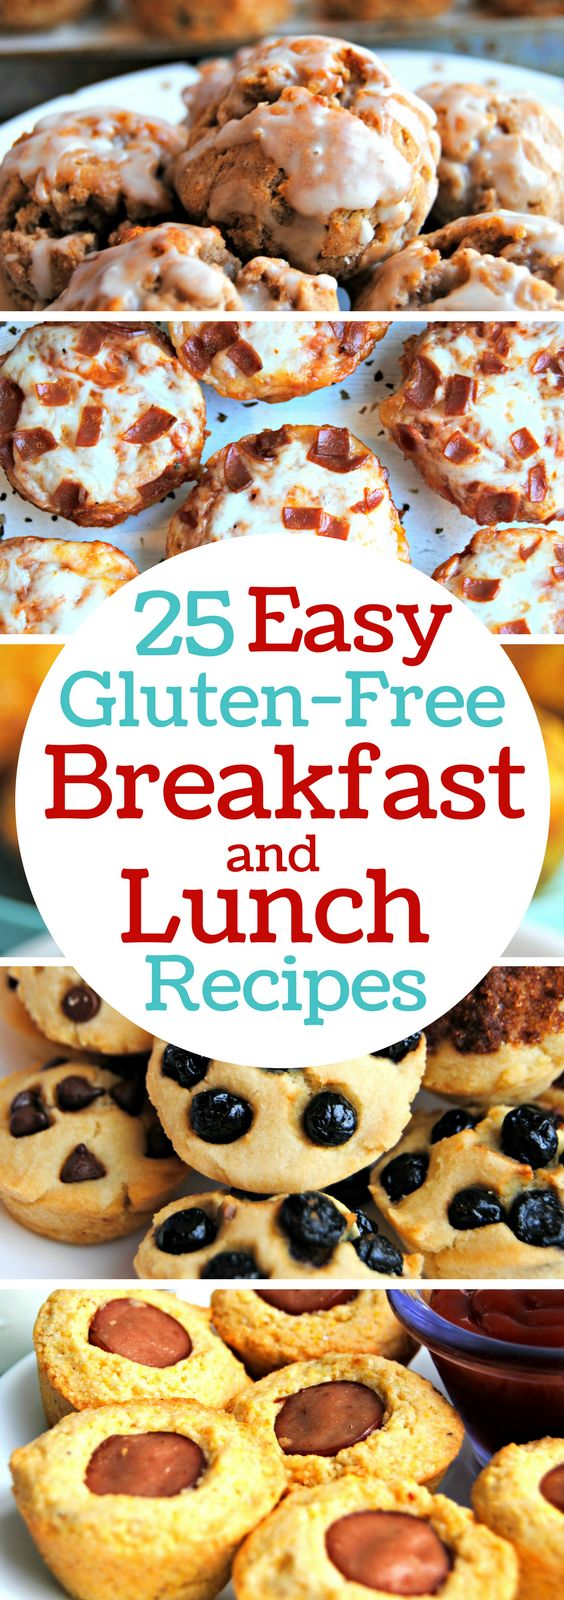 It's back to school time and I know a lot of my mama friends need to find quick and easy gluten-free recipes for breakfast and lunch. That's why I put together this list of my favorite easy gluten-free breakfast and lunch recipes. #glutenfreebrfeakfast #glutenfreelunch #easyglutenfreerecipes #freezermeals #mealplanning #glutenfree